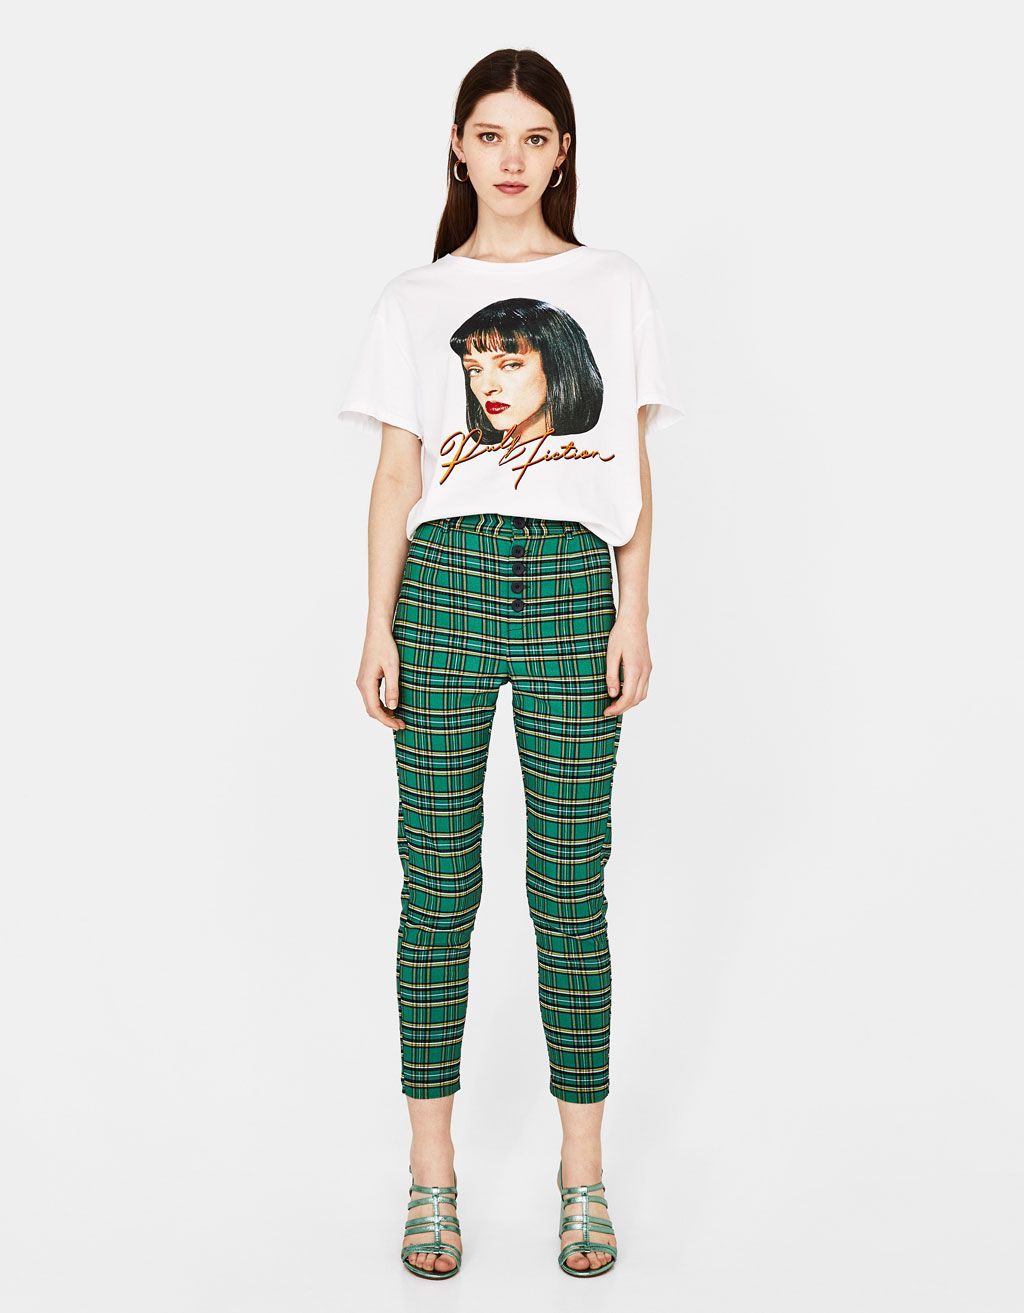 c4c5a0022b31 High waist checked trousers - Bershka  fashion  product  checked  trousers   highwaist  cuadros  pantalon  cintura  green  verde  girl  girly  trend   trendy ...